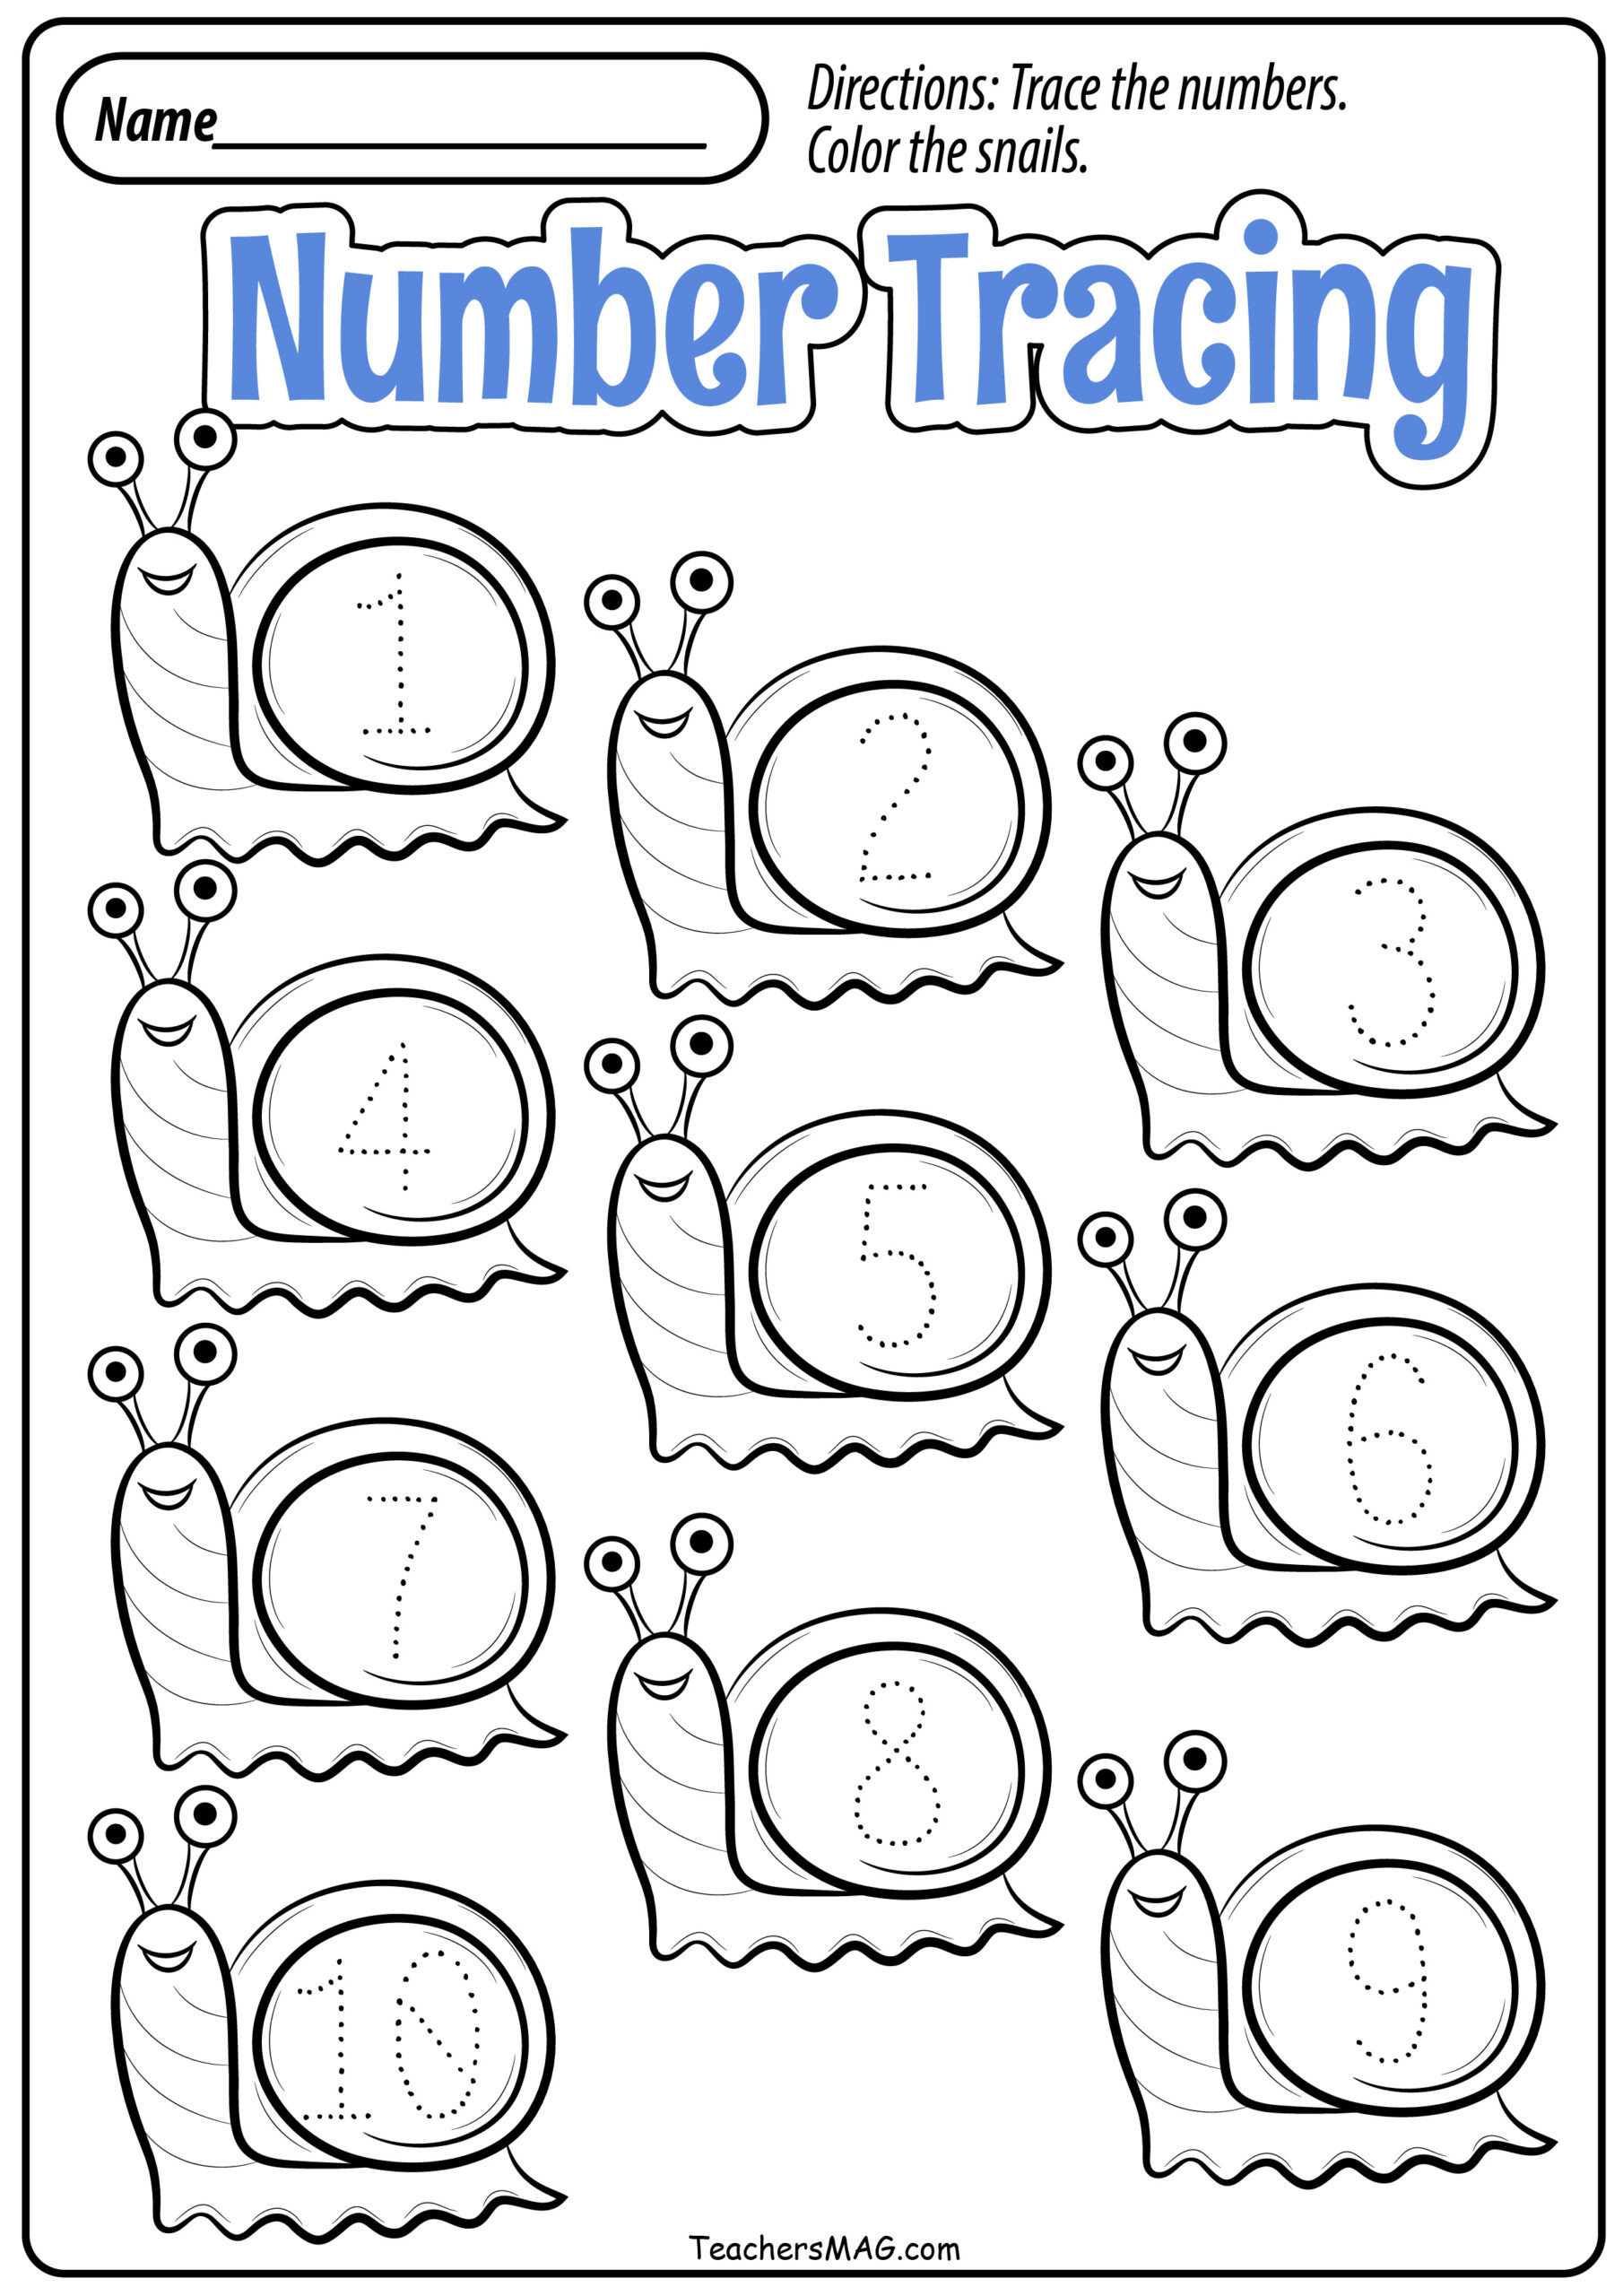 Number Recognition Worksheets for Preschool Free Printable Preschool Number Recognition Worksheets Fall